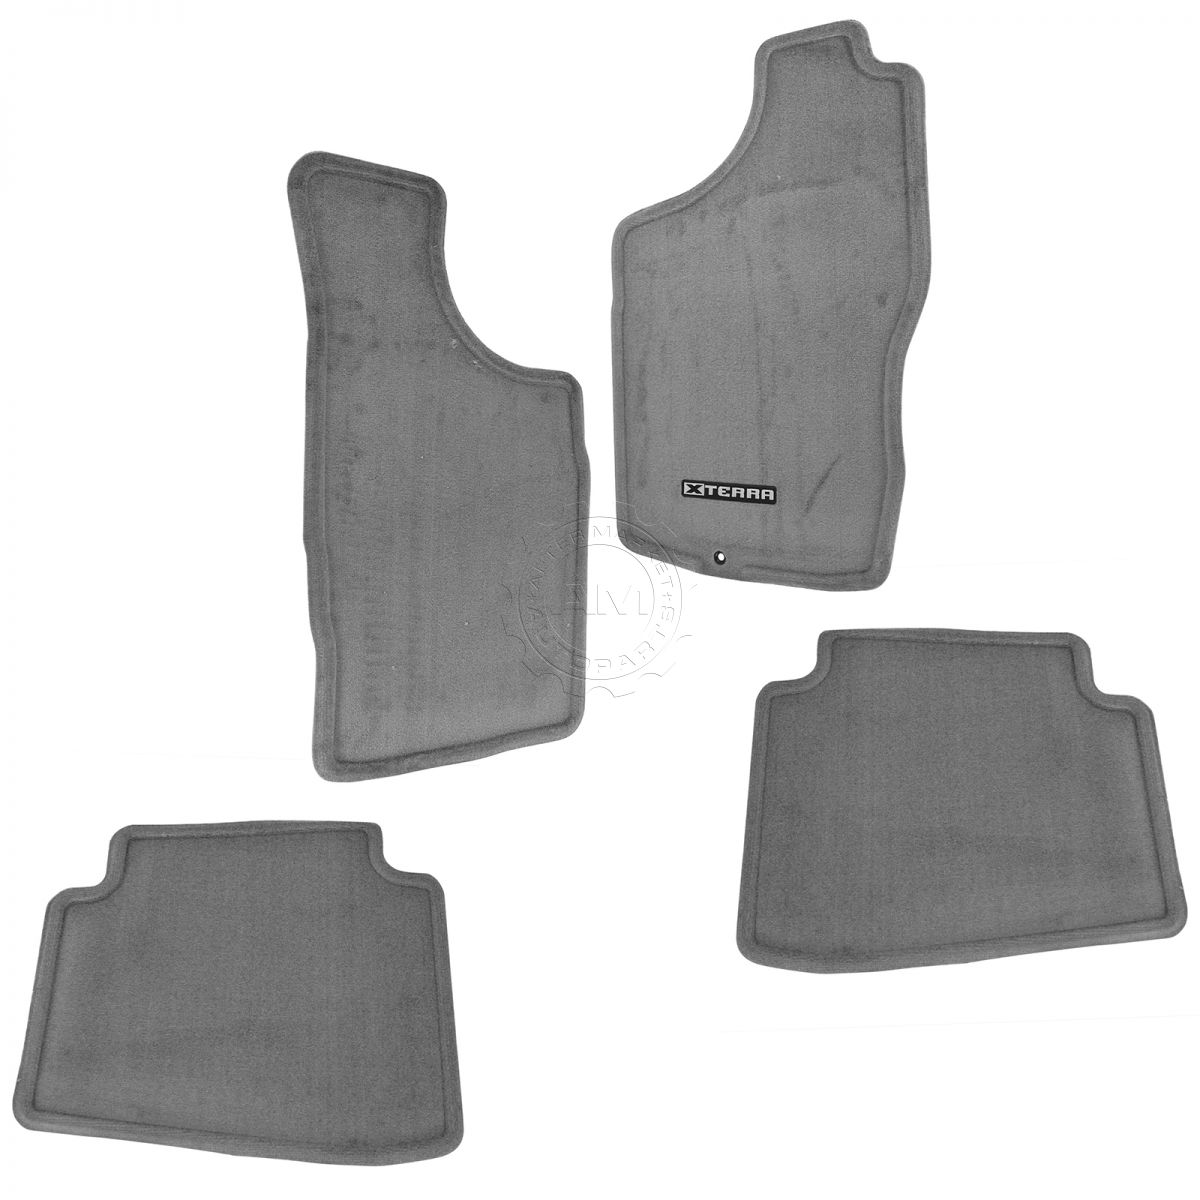 OEM 999E2KP000GY Carpeted Floor Mat Set of 4 Gray for 00-04 Nissan Xterra